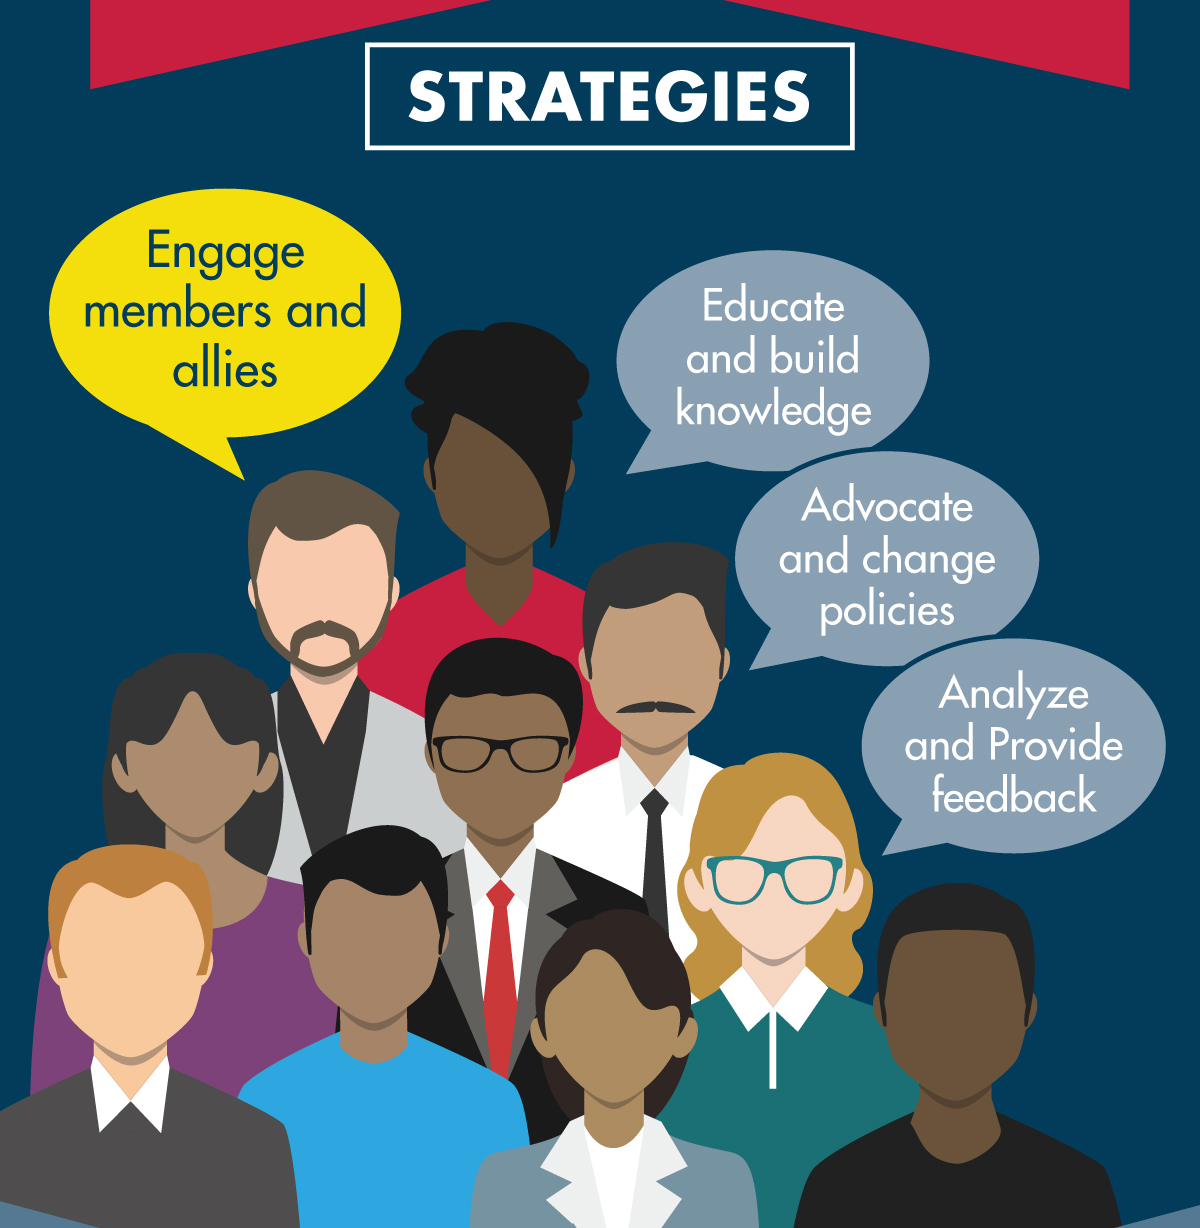 We will use the following strategies to make this vision a reality: education and build knowledge, engage members and allies, analyze and provide feedback, and advocate and change policies.